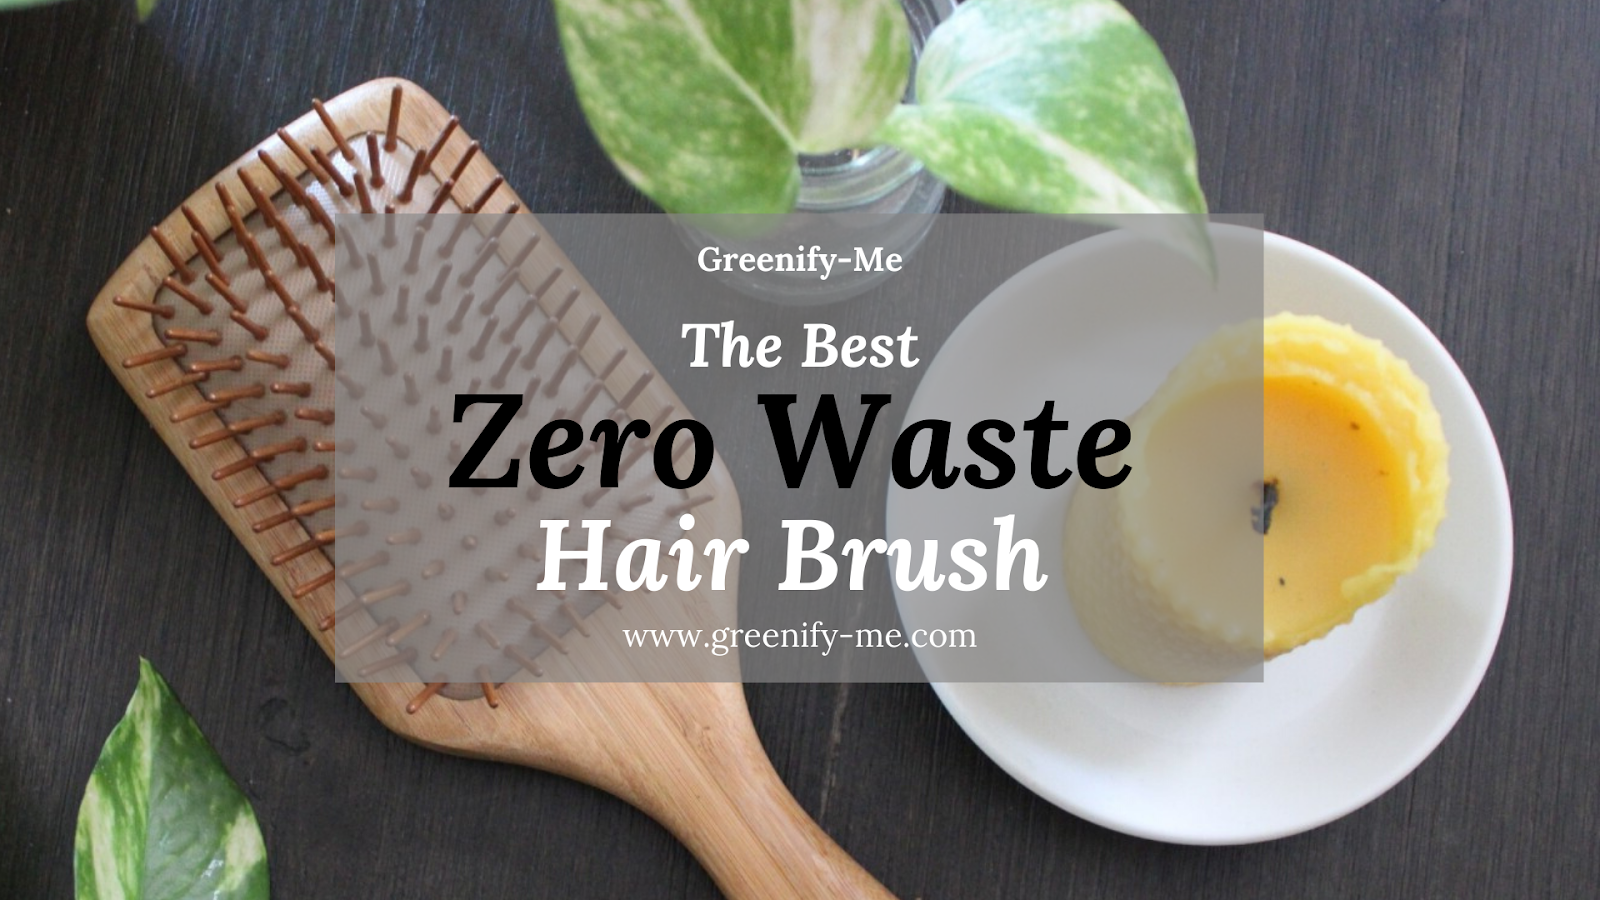 The Best Zero Waste Hair Brush